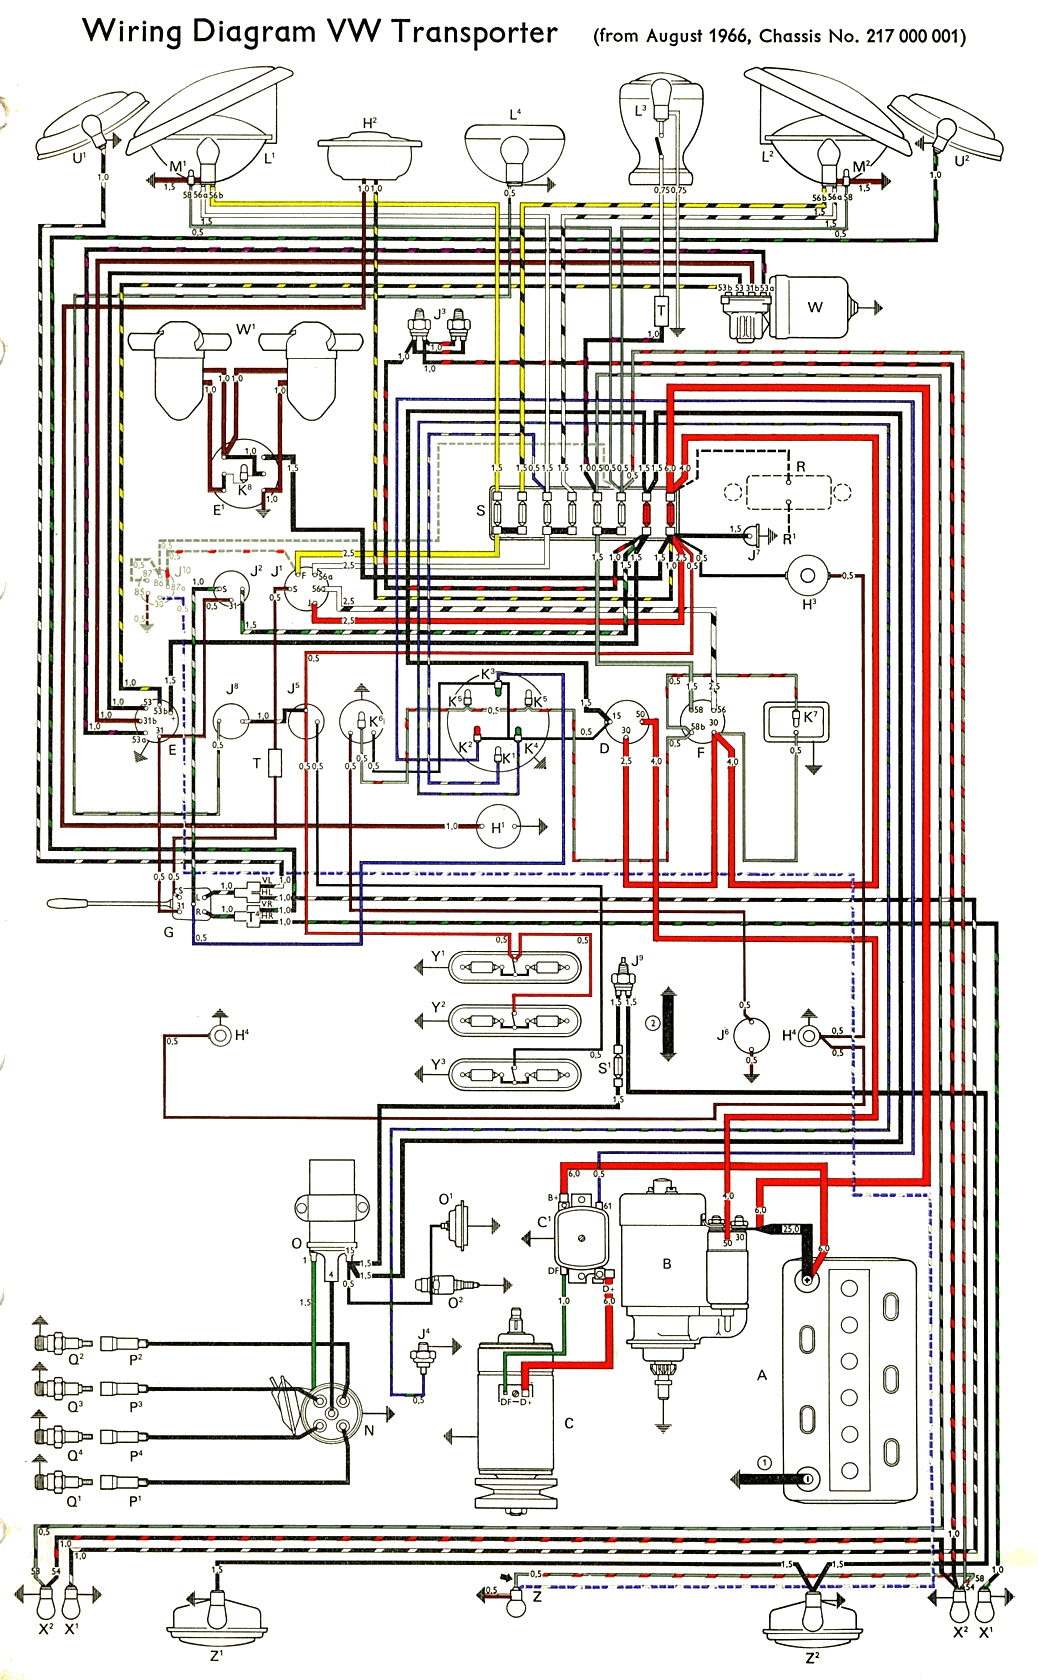 hight resolution of thomas bus wiring diagrams wiring diagram database jensen 20 pin wire diagram thomas built bus wiring